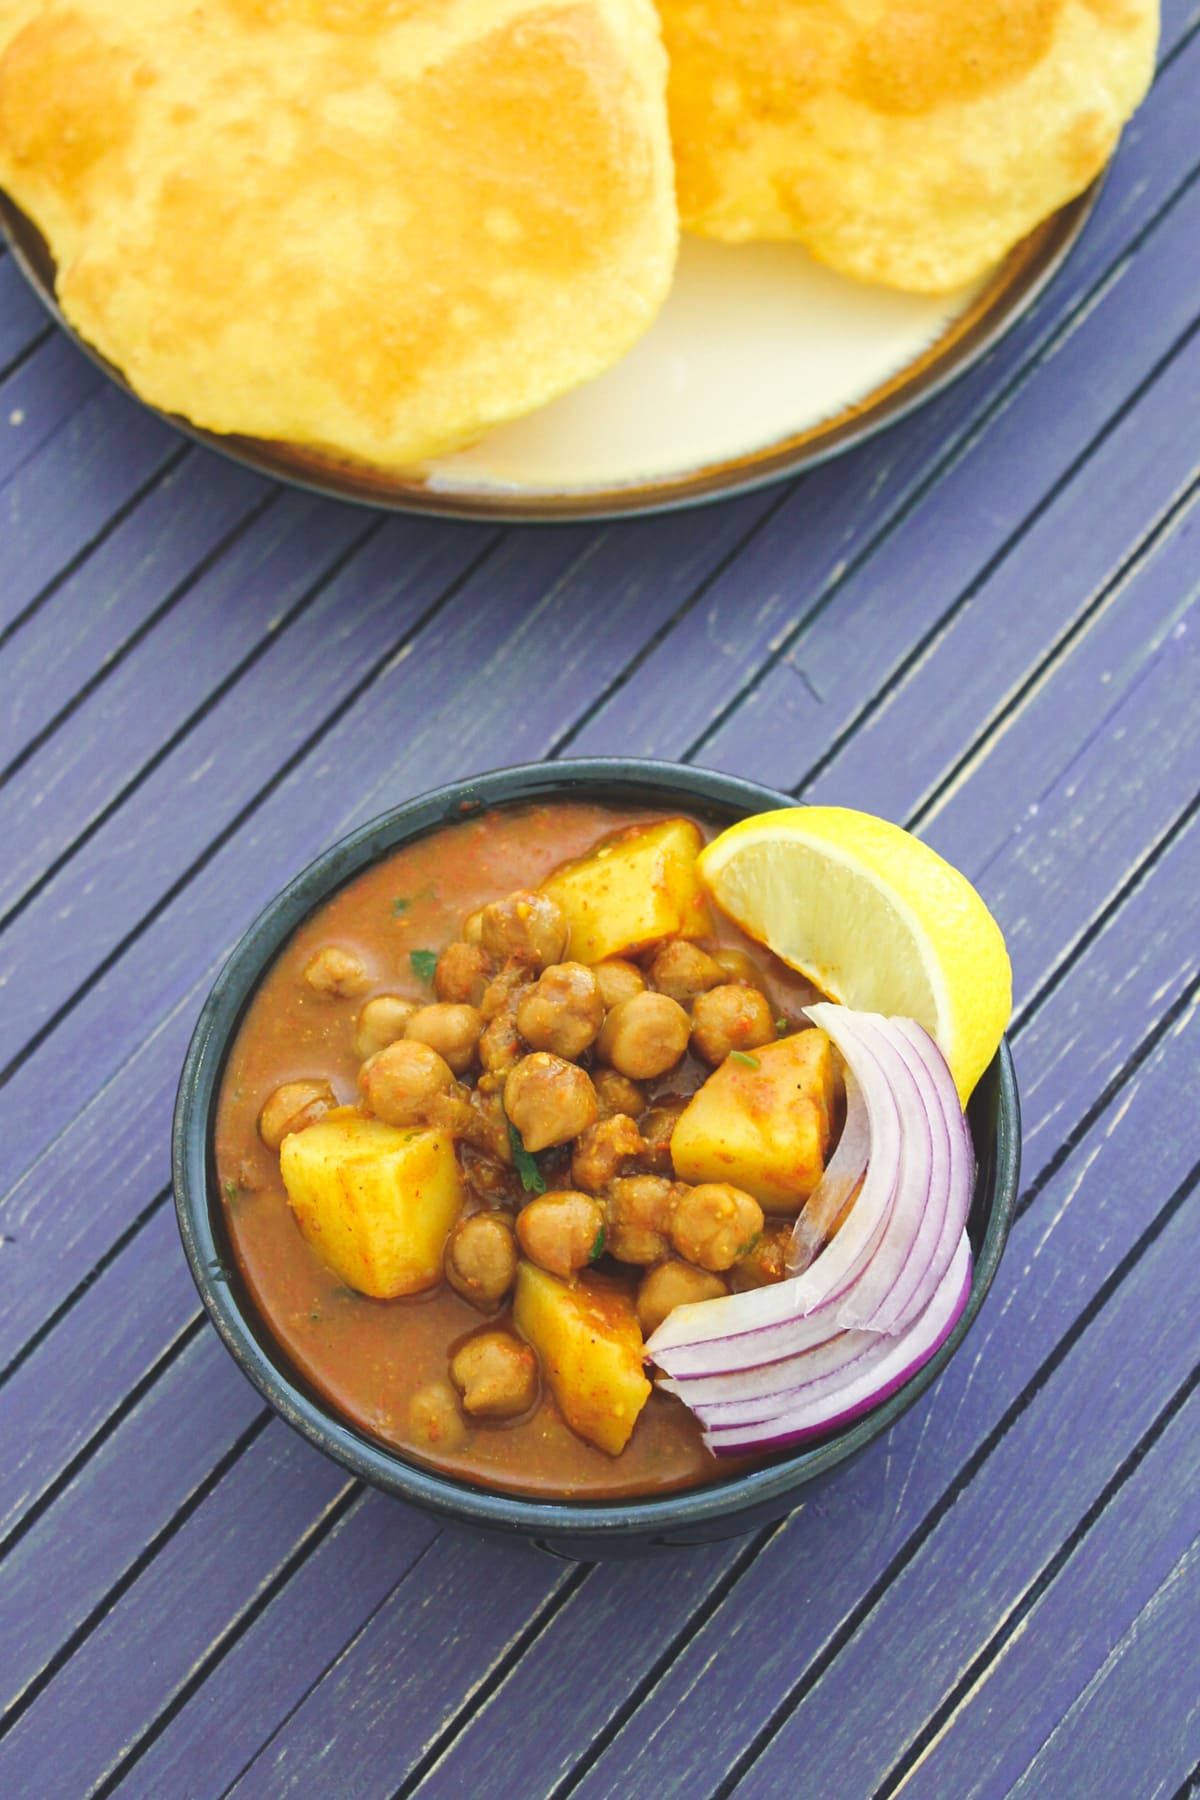 Aloo chole served in a bowl with garnish of onions and lemon wedge, bhatura on the side.